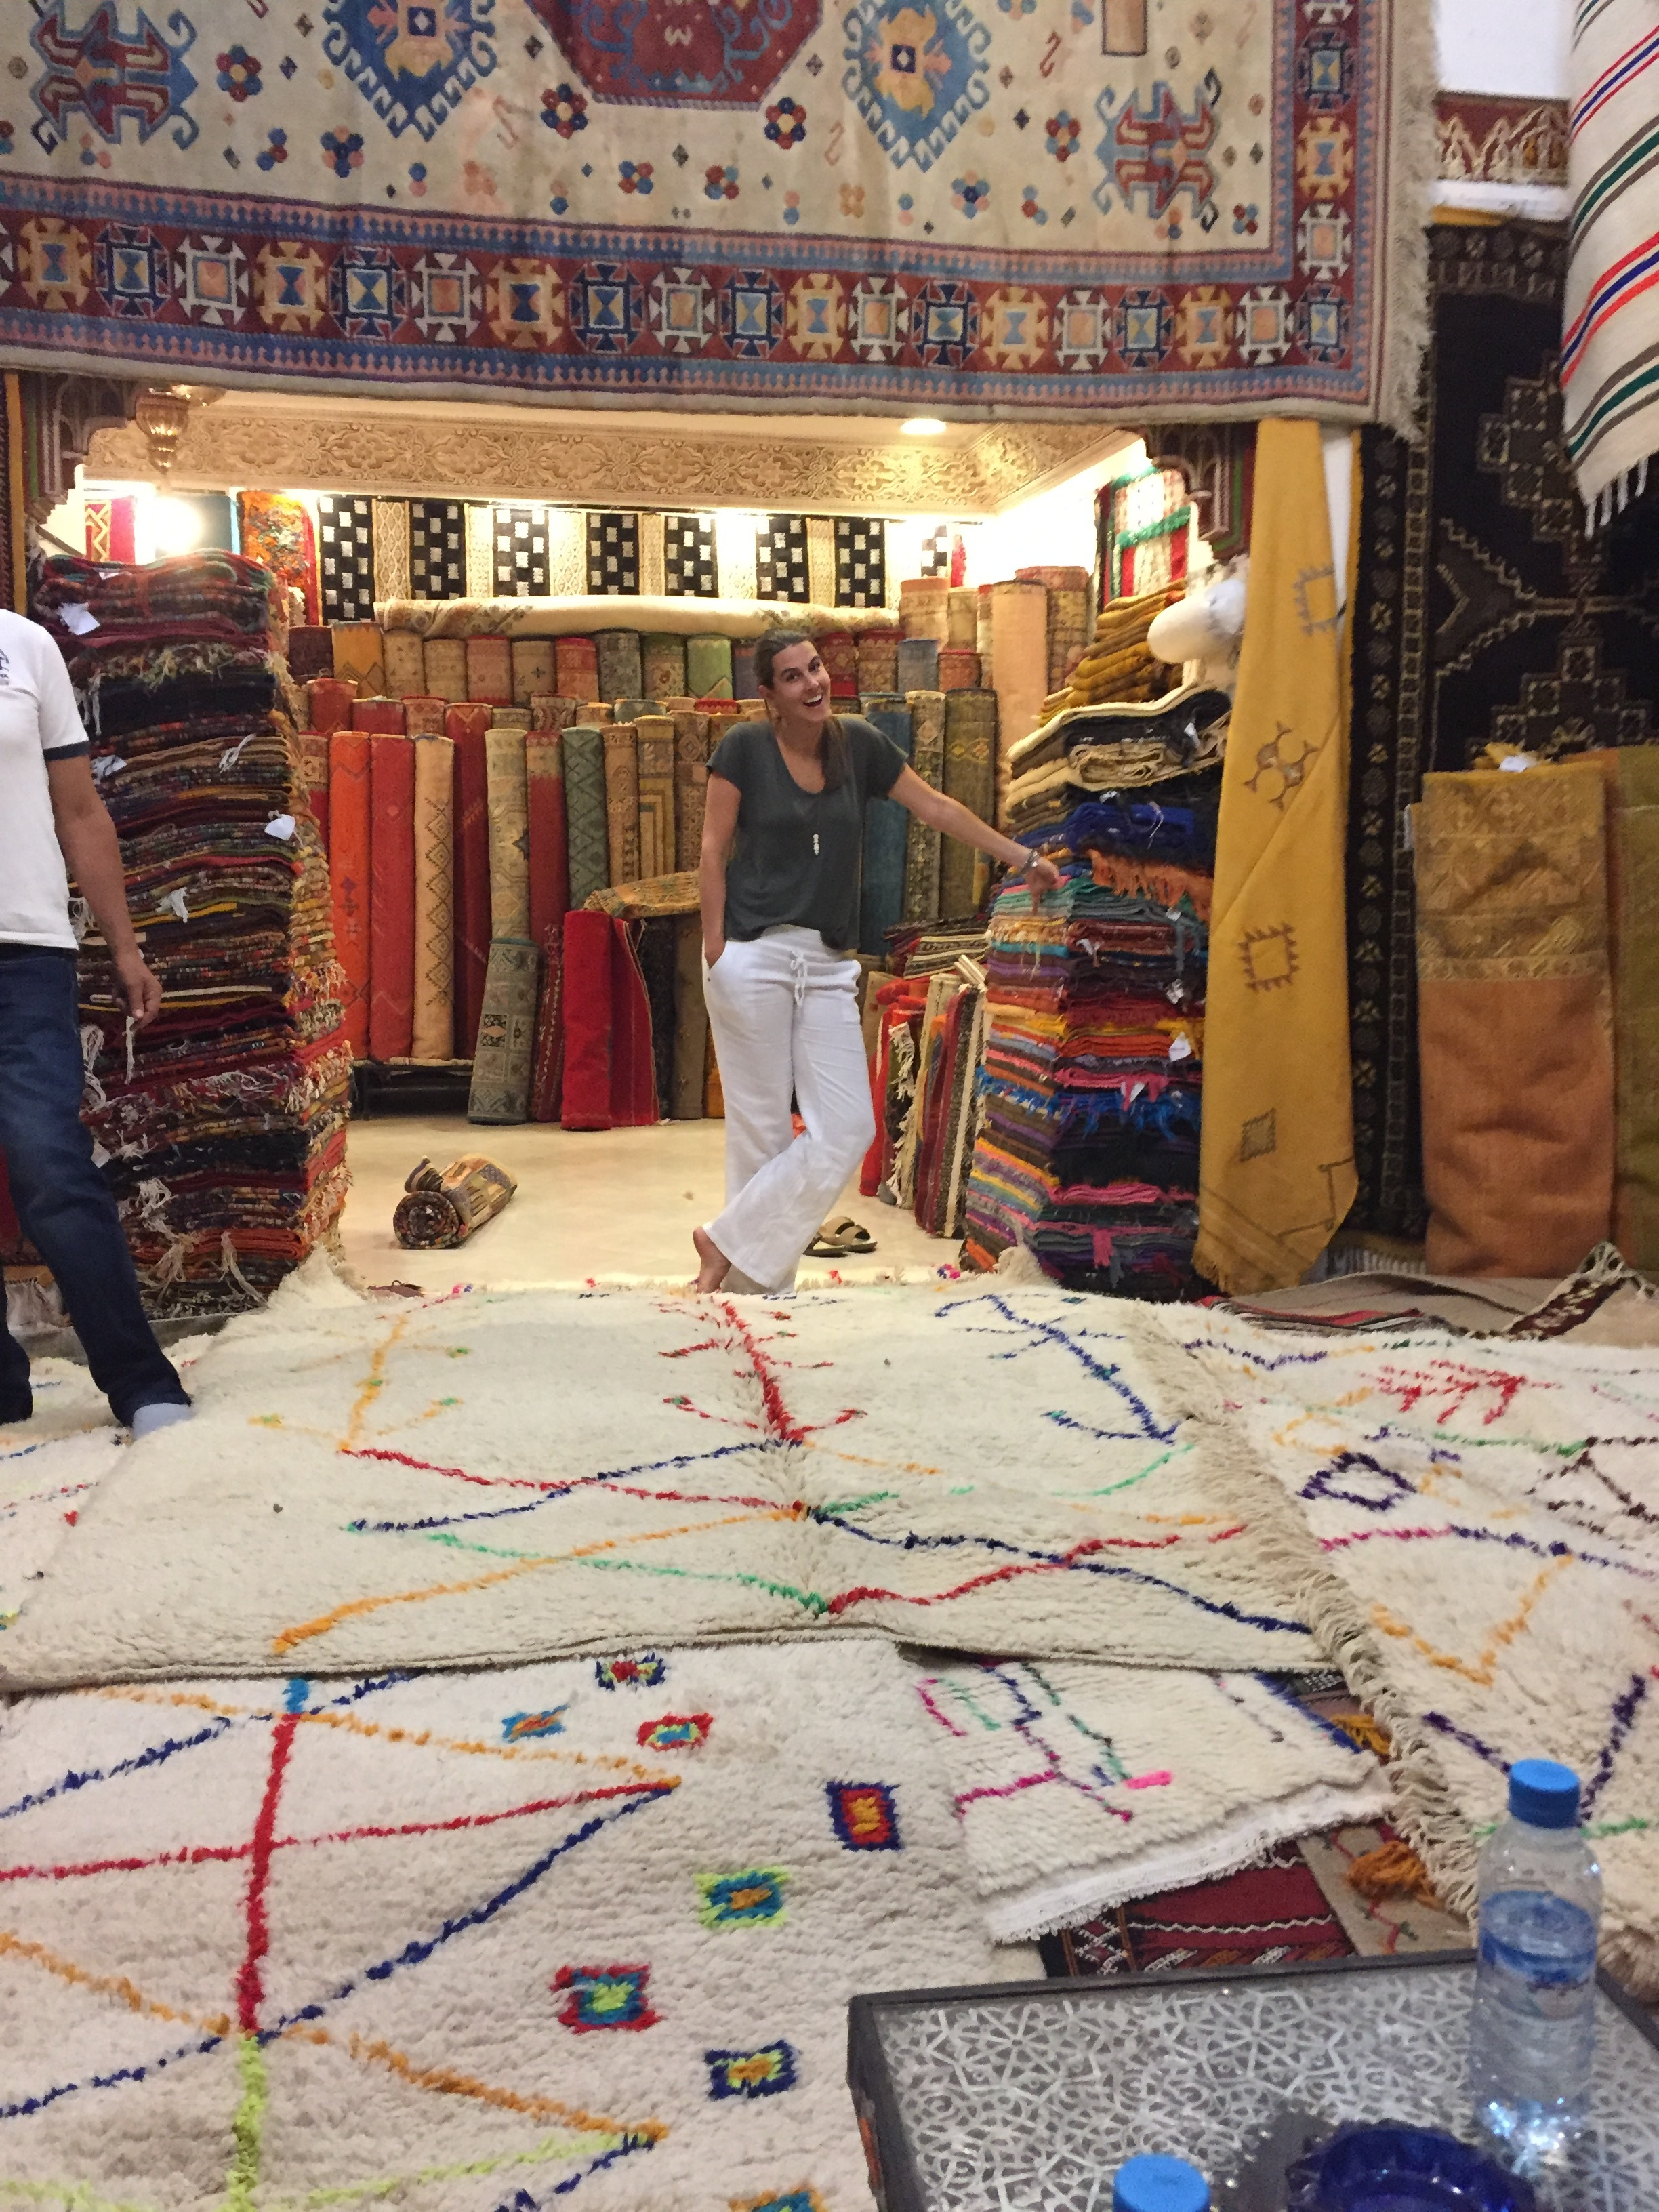 The Mecca of rugs